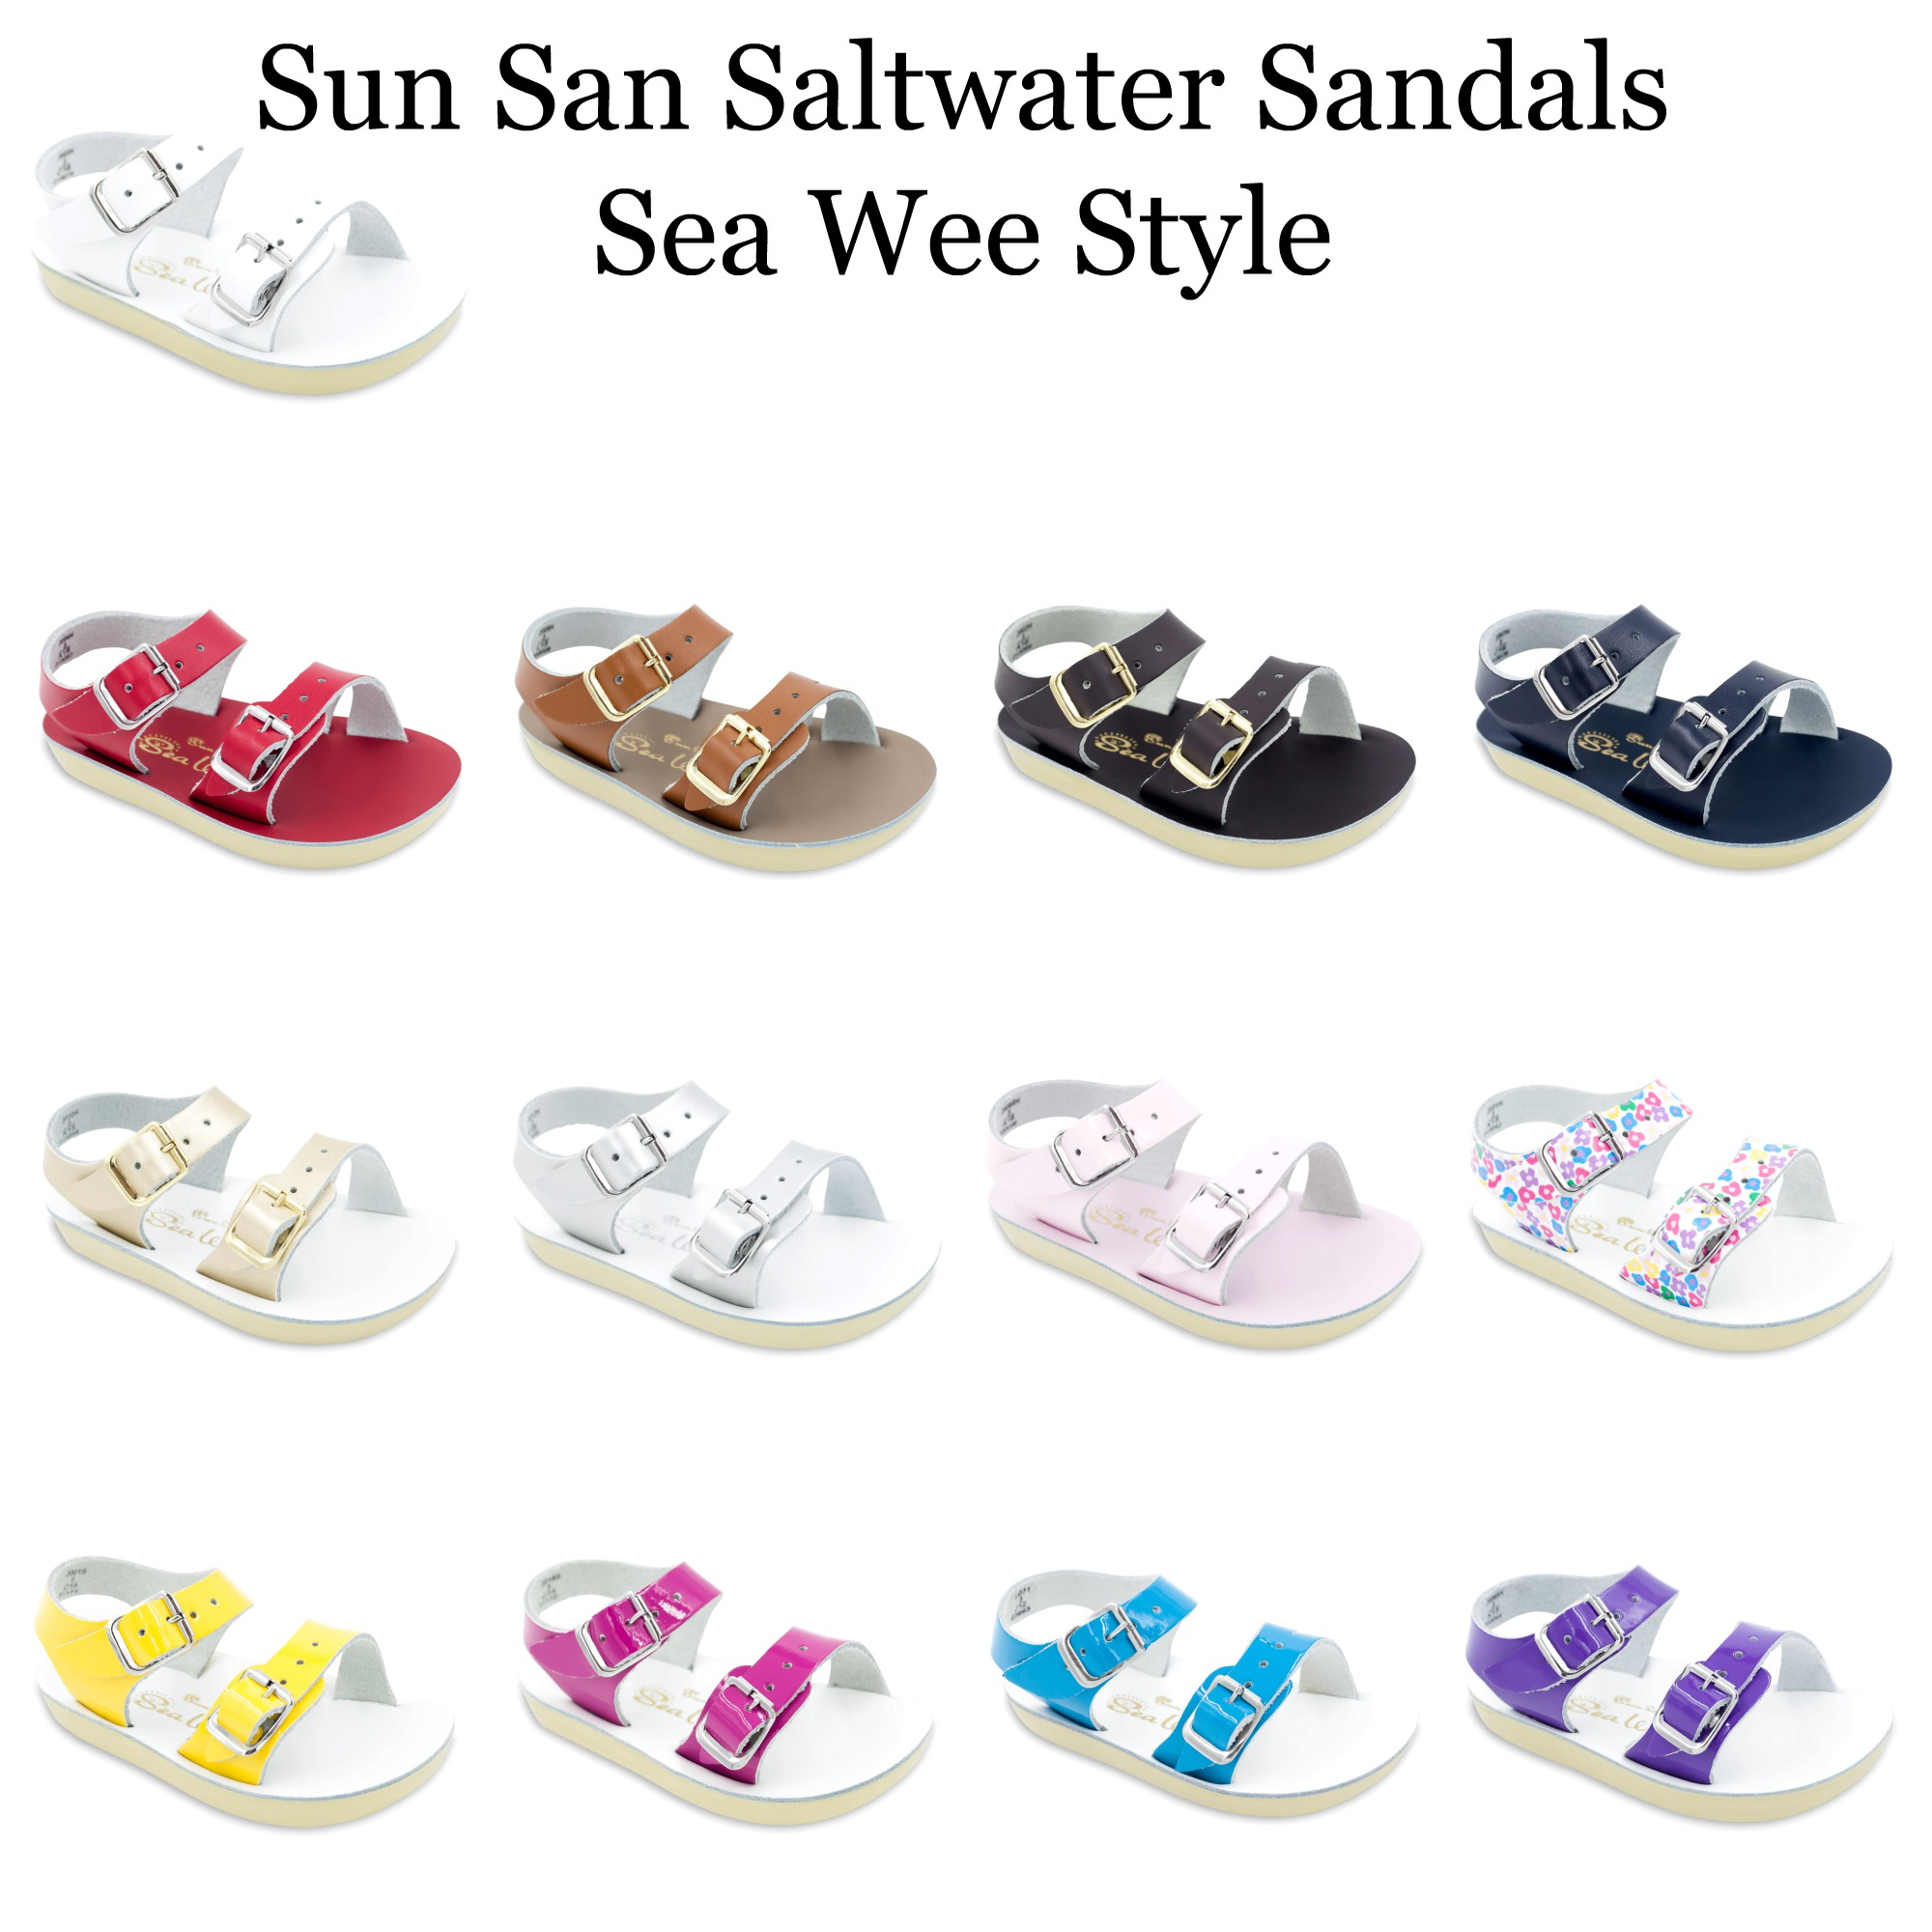 2aff696d7368 Pre-Order Sun San Salt Water Sandals-Sea Wee Style-ALL COLORS